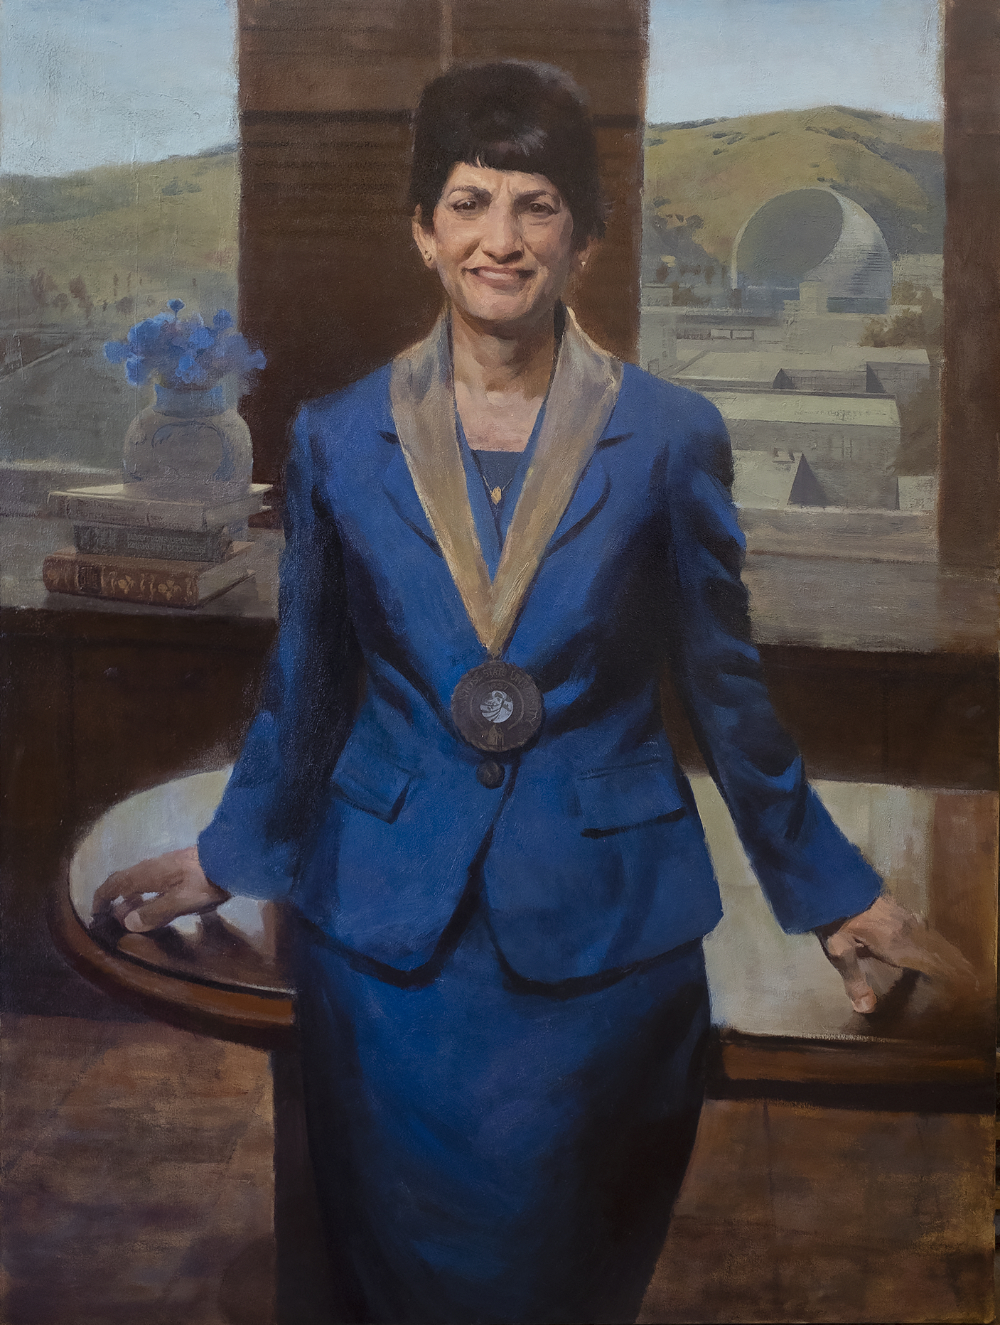 Mary A. Papazian, President of San Jose State University